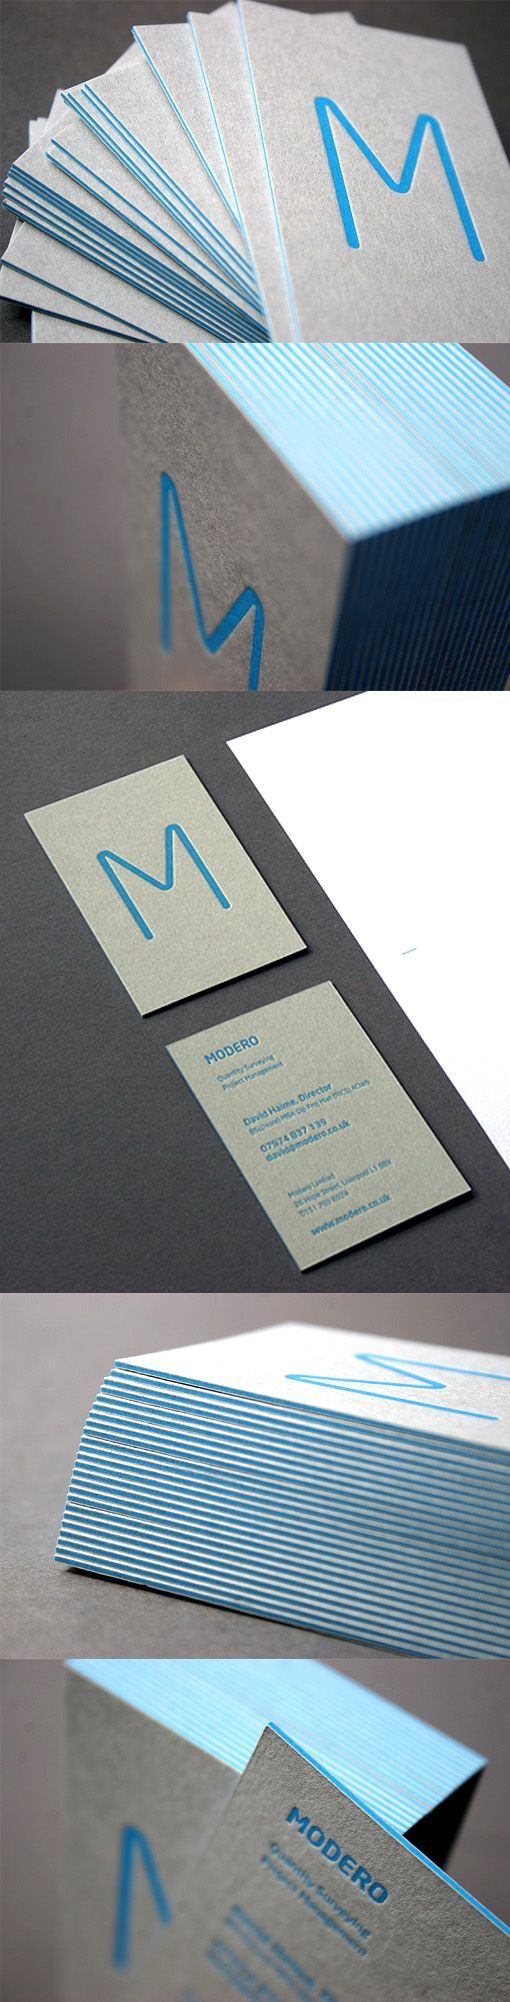 matt board business card design. #design #businesscard #design